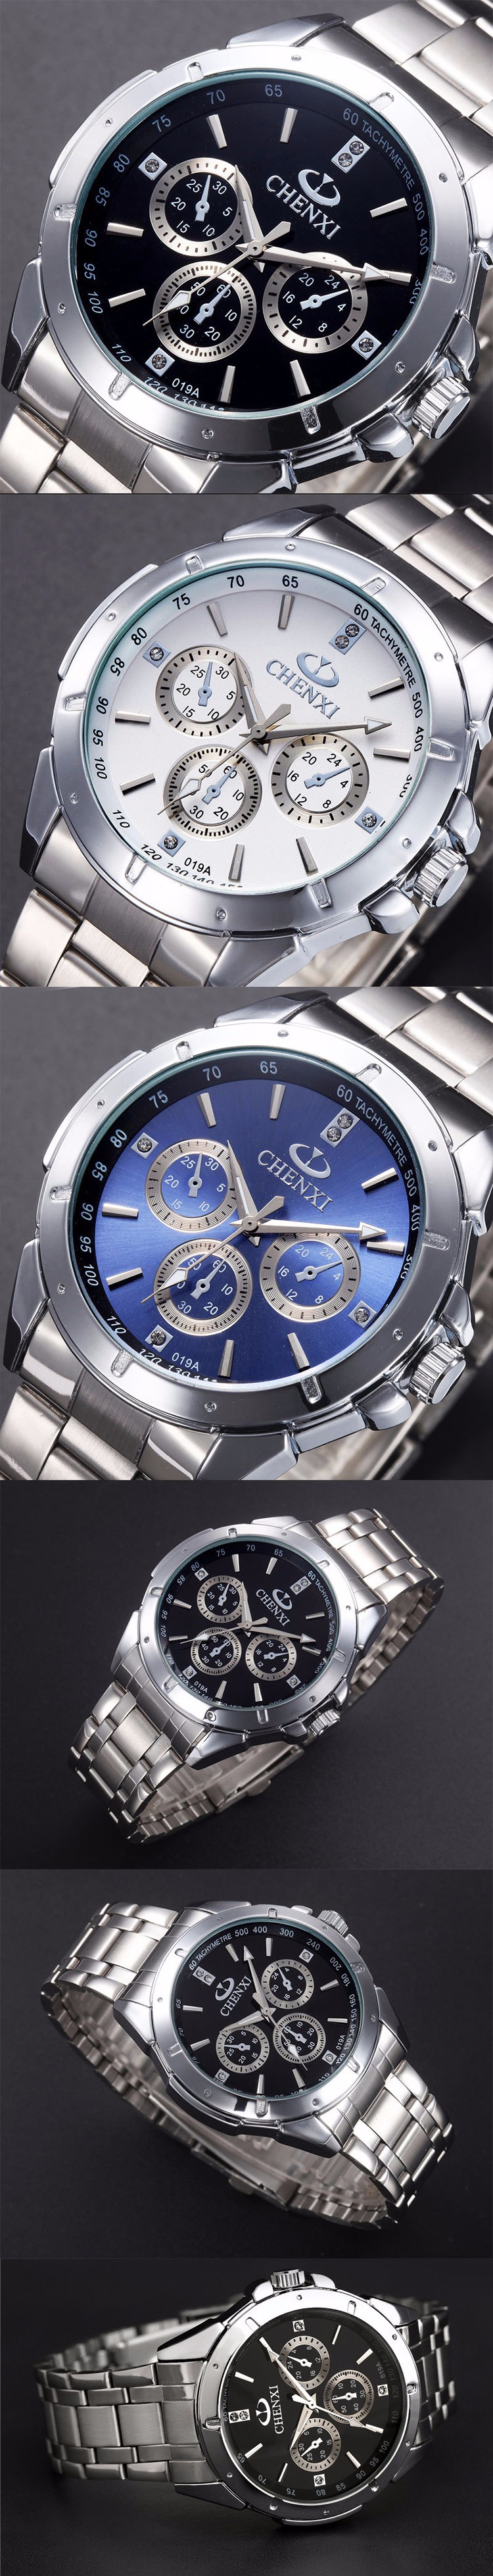 New Stainless Steel Wristwatch Quartz Watch Men Top Brand Luxury Famous Wrist Watch Male Clock For Men Hodinky Relogio Masculino 3  New Stainless Steel Wristwatch Quartz Watch Men Top Brand Luxury Famous Wrist Watch Male Clock For Men Hodinky Relogio Masculino HTB11plAOpXXXXX8XVXXq6xXFXXXN